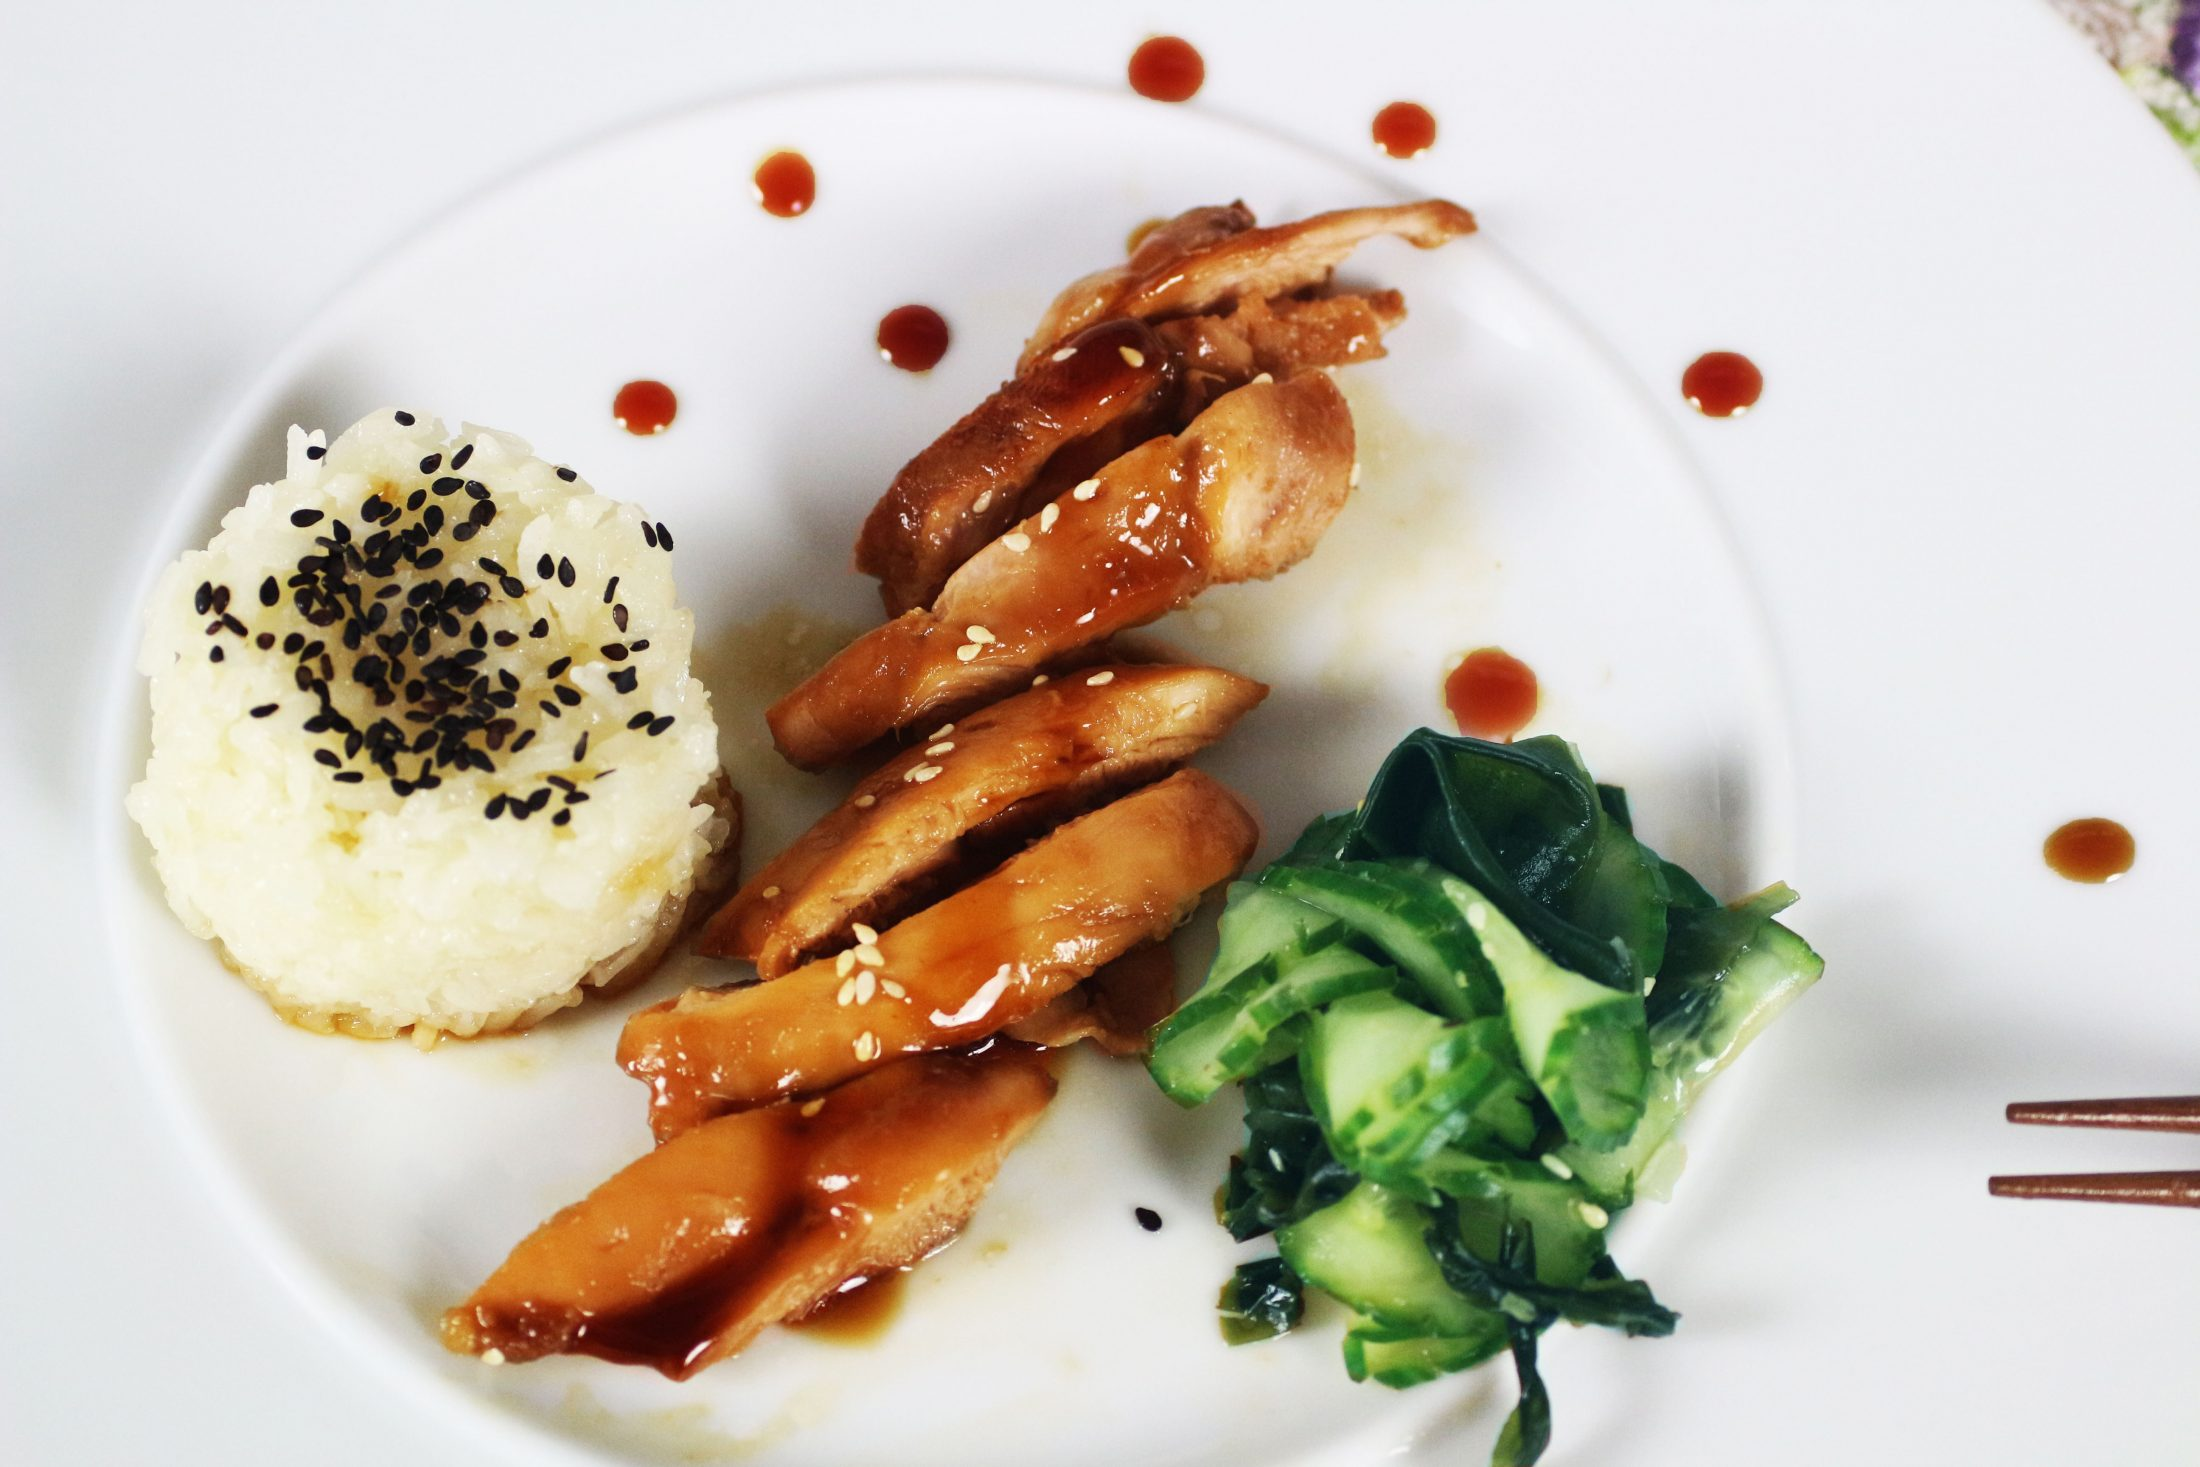 Kip teriyaki recept